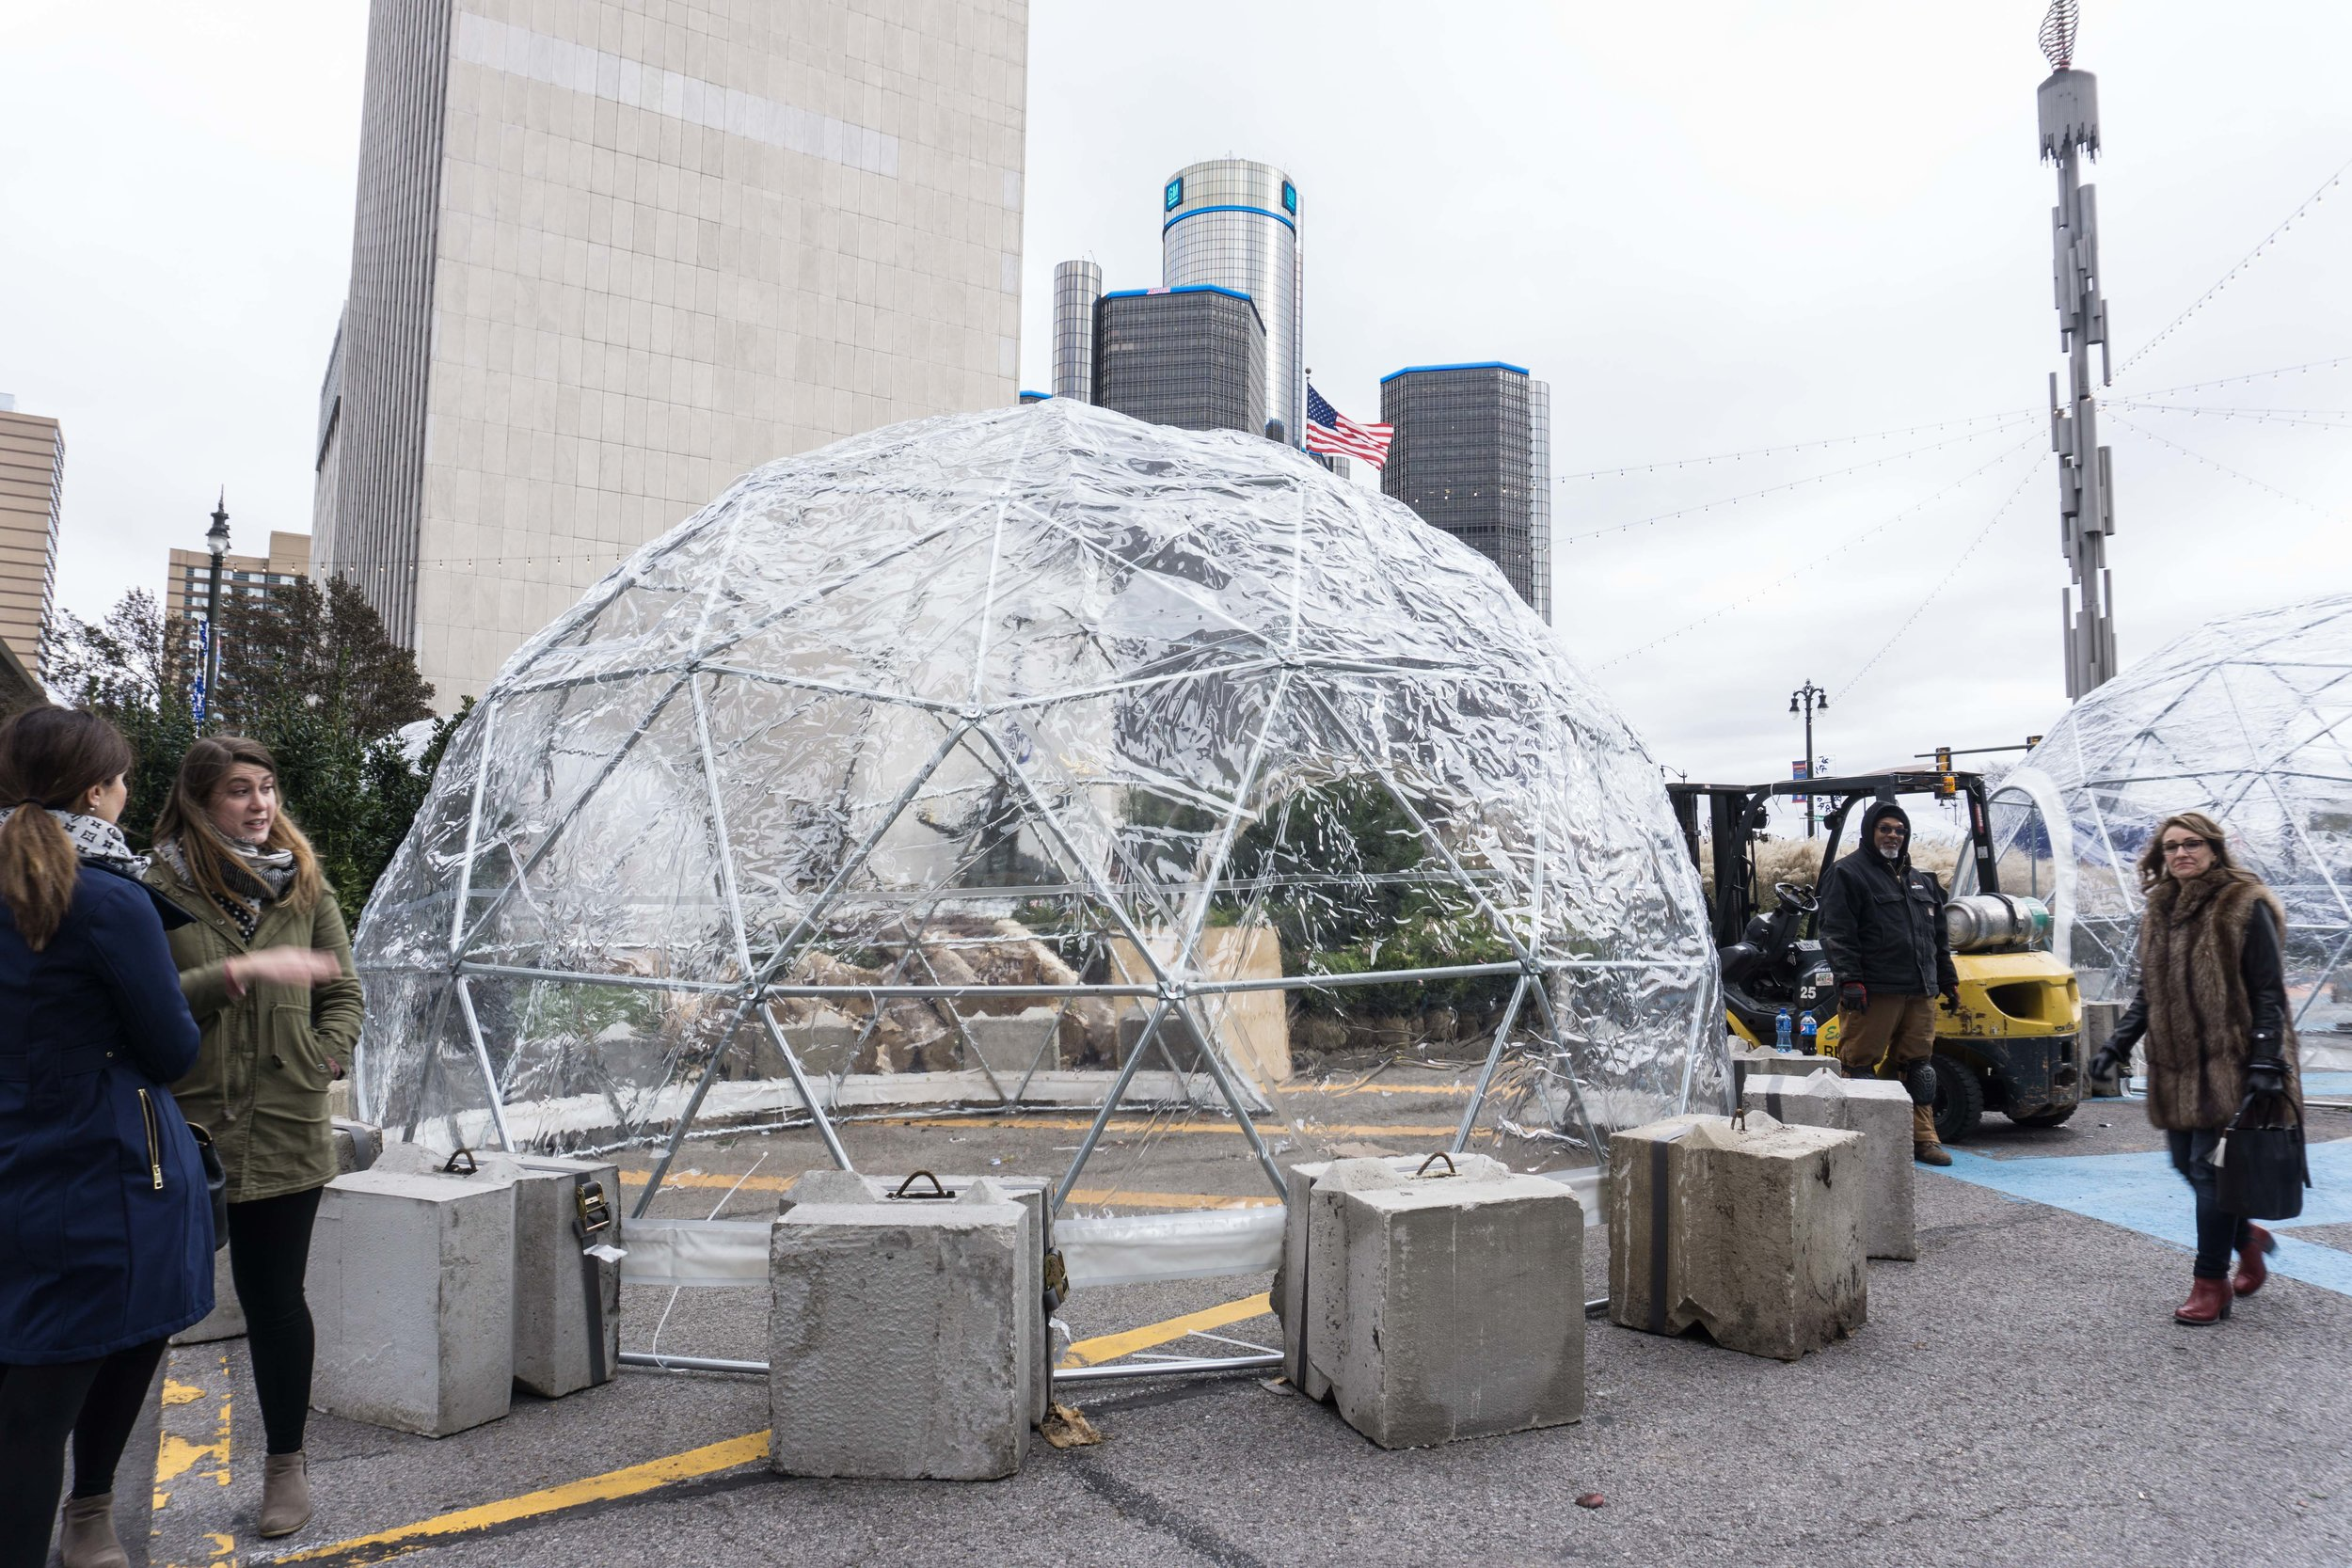 Igloos that will house local vendors.